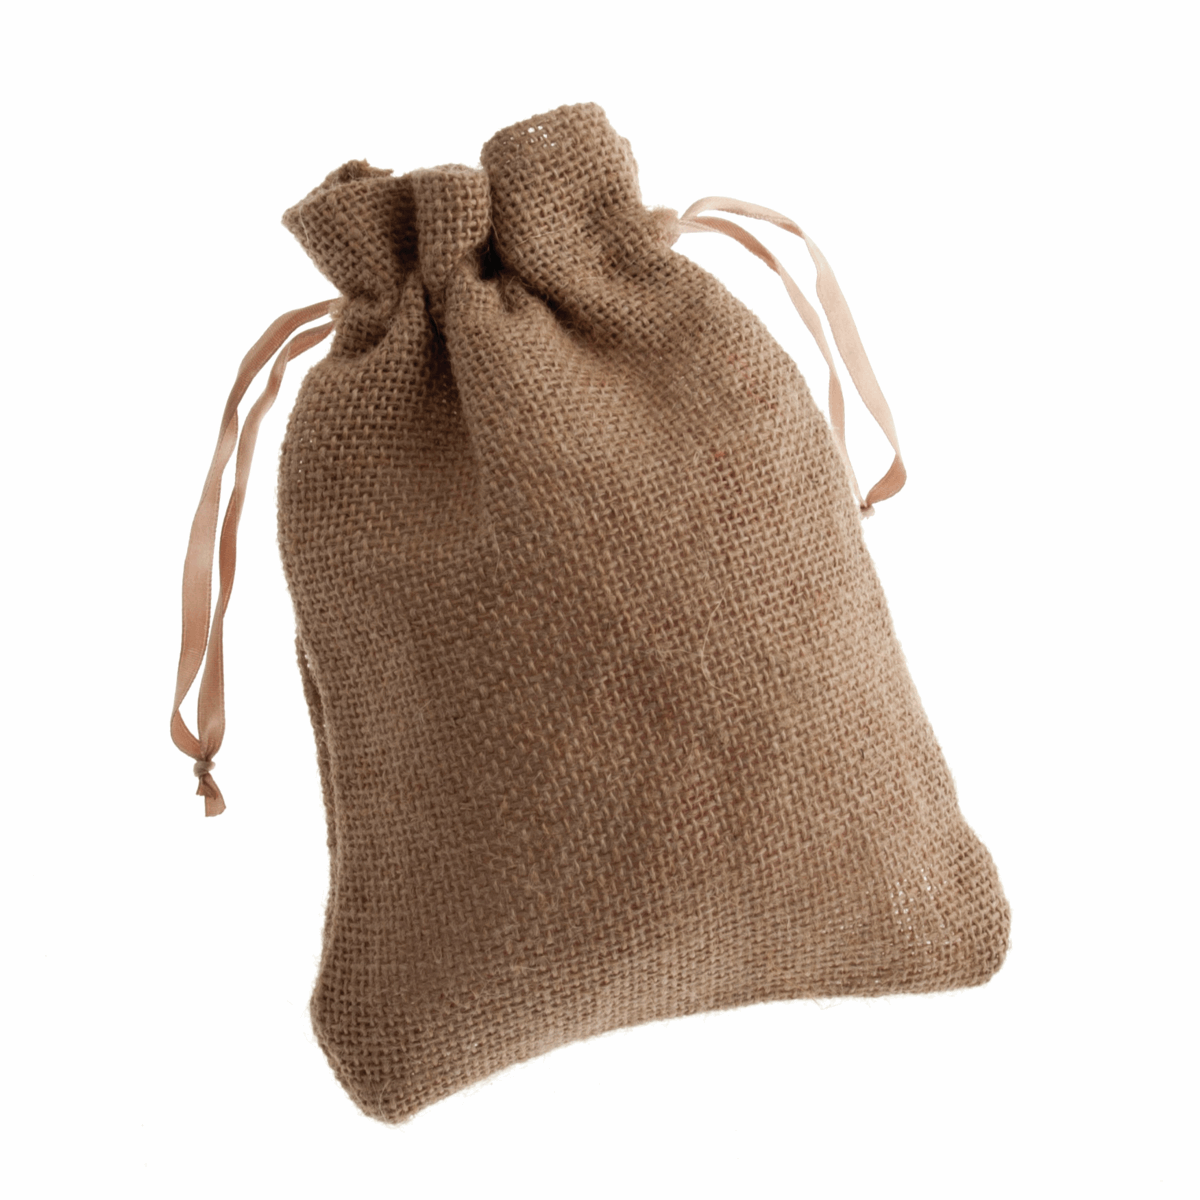 Picture of Natural Hessian Bag: 21 x 15cm